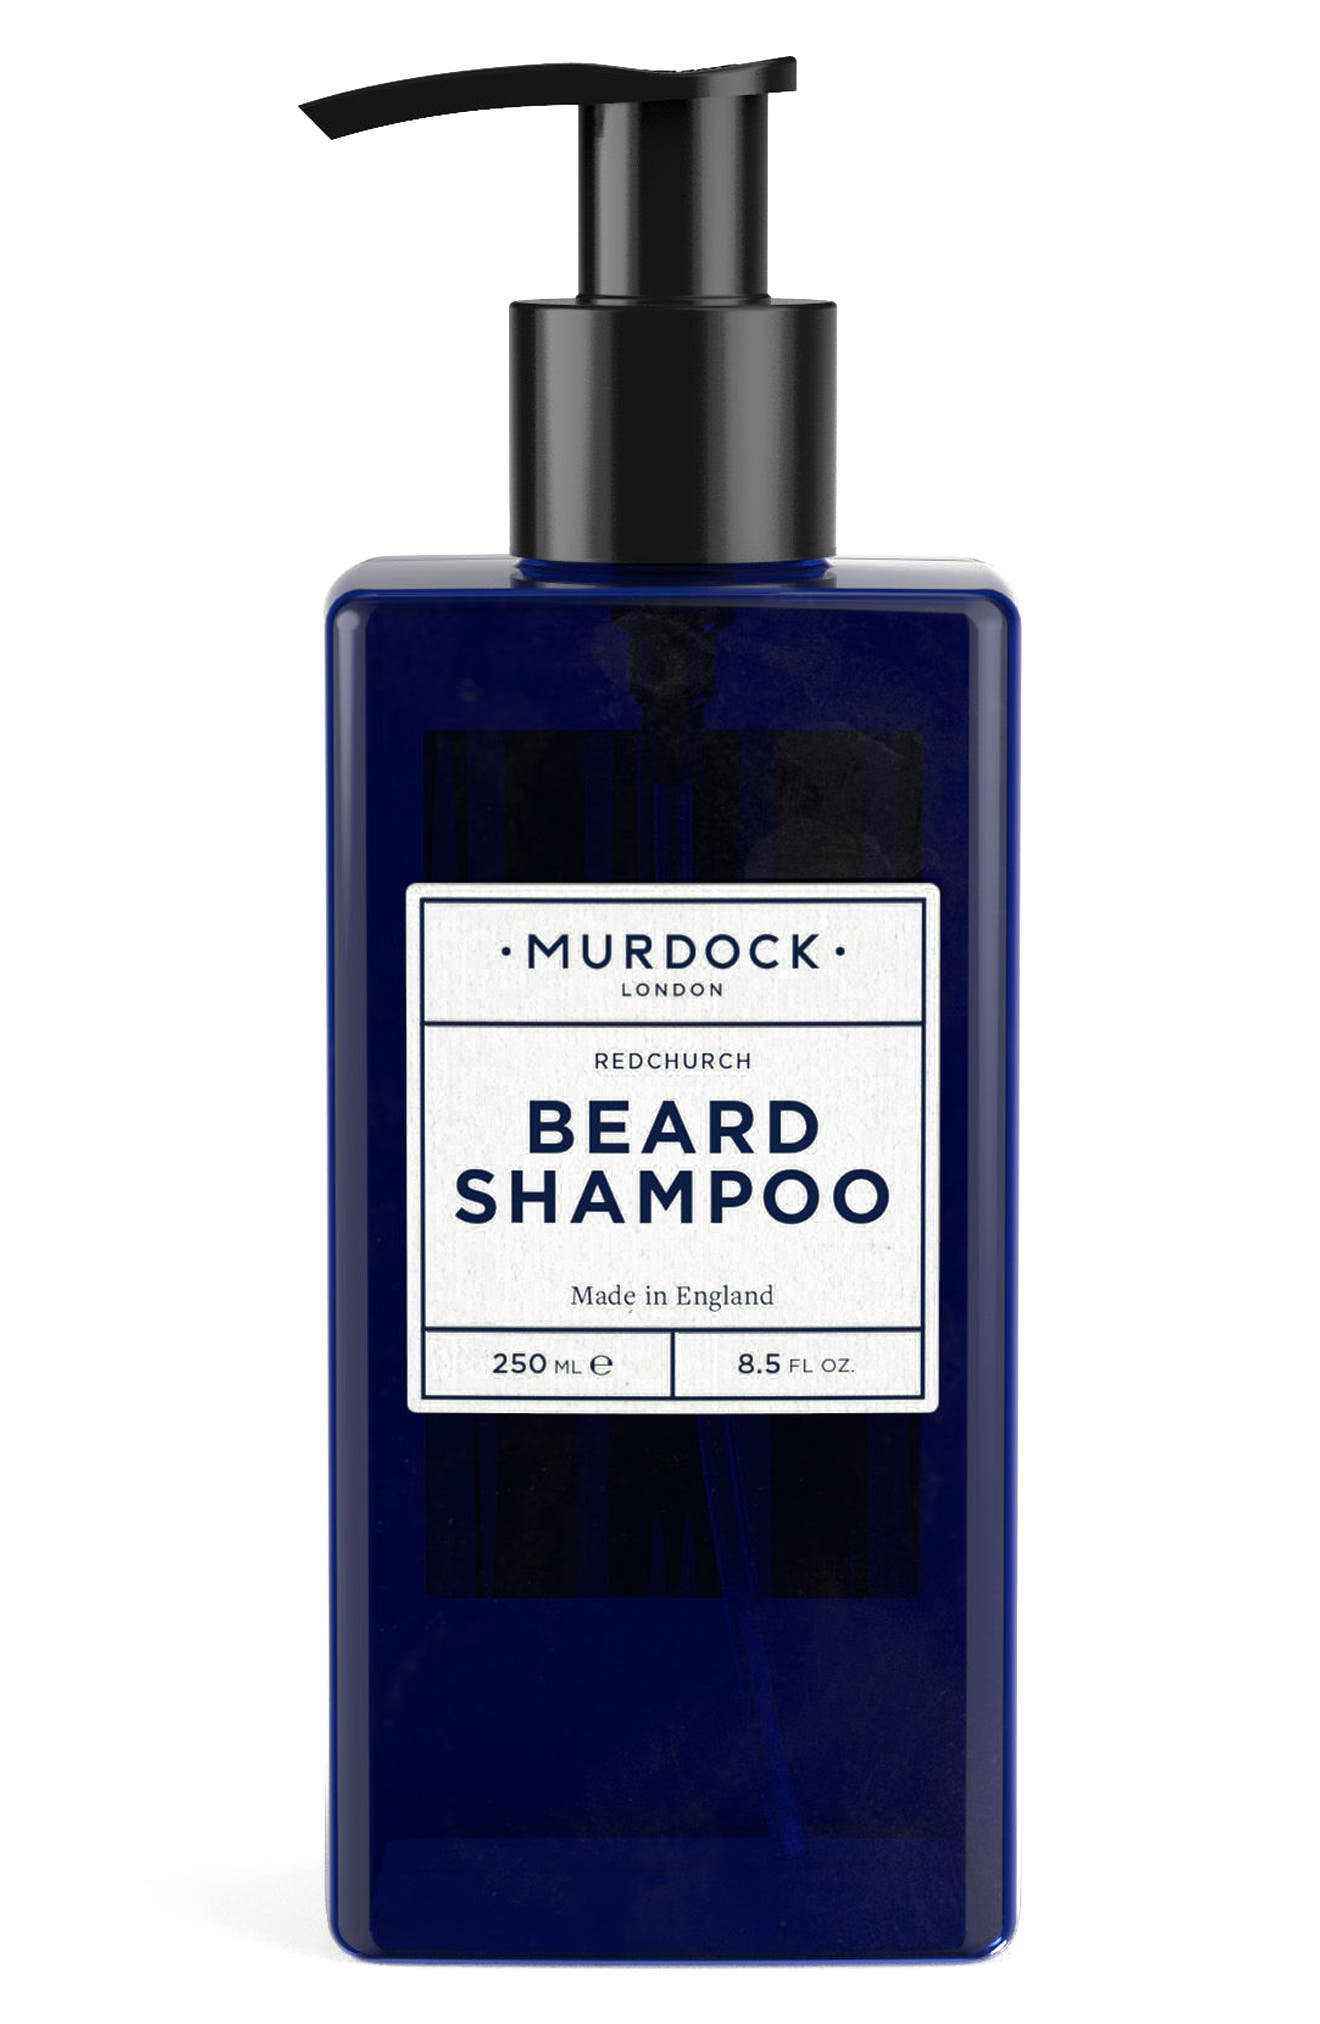 What it is: A pH-balanced shampoo. What it does: This sulfate-free formula thoroughly cleanses without stripping your hair follicles or skin. How to use: Massage a thumbnail amount into your beard and rinse through with water. Use twice per week. Style Name: Murdock London Beard Shampoo. Style Number: 5576690. Available in stores.